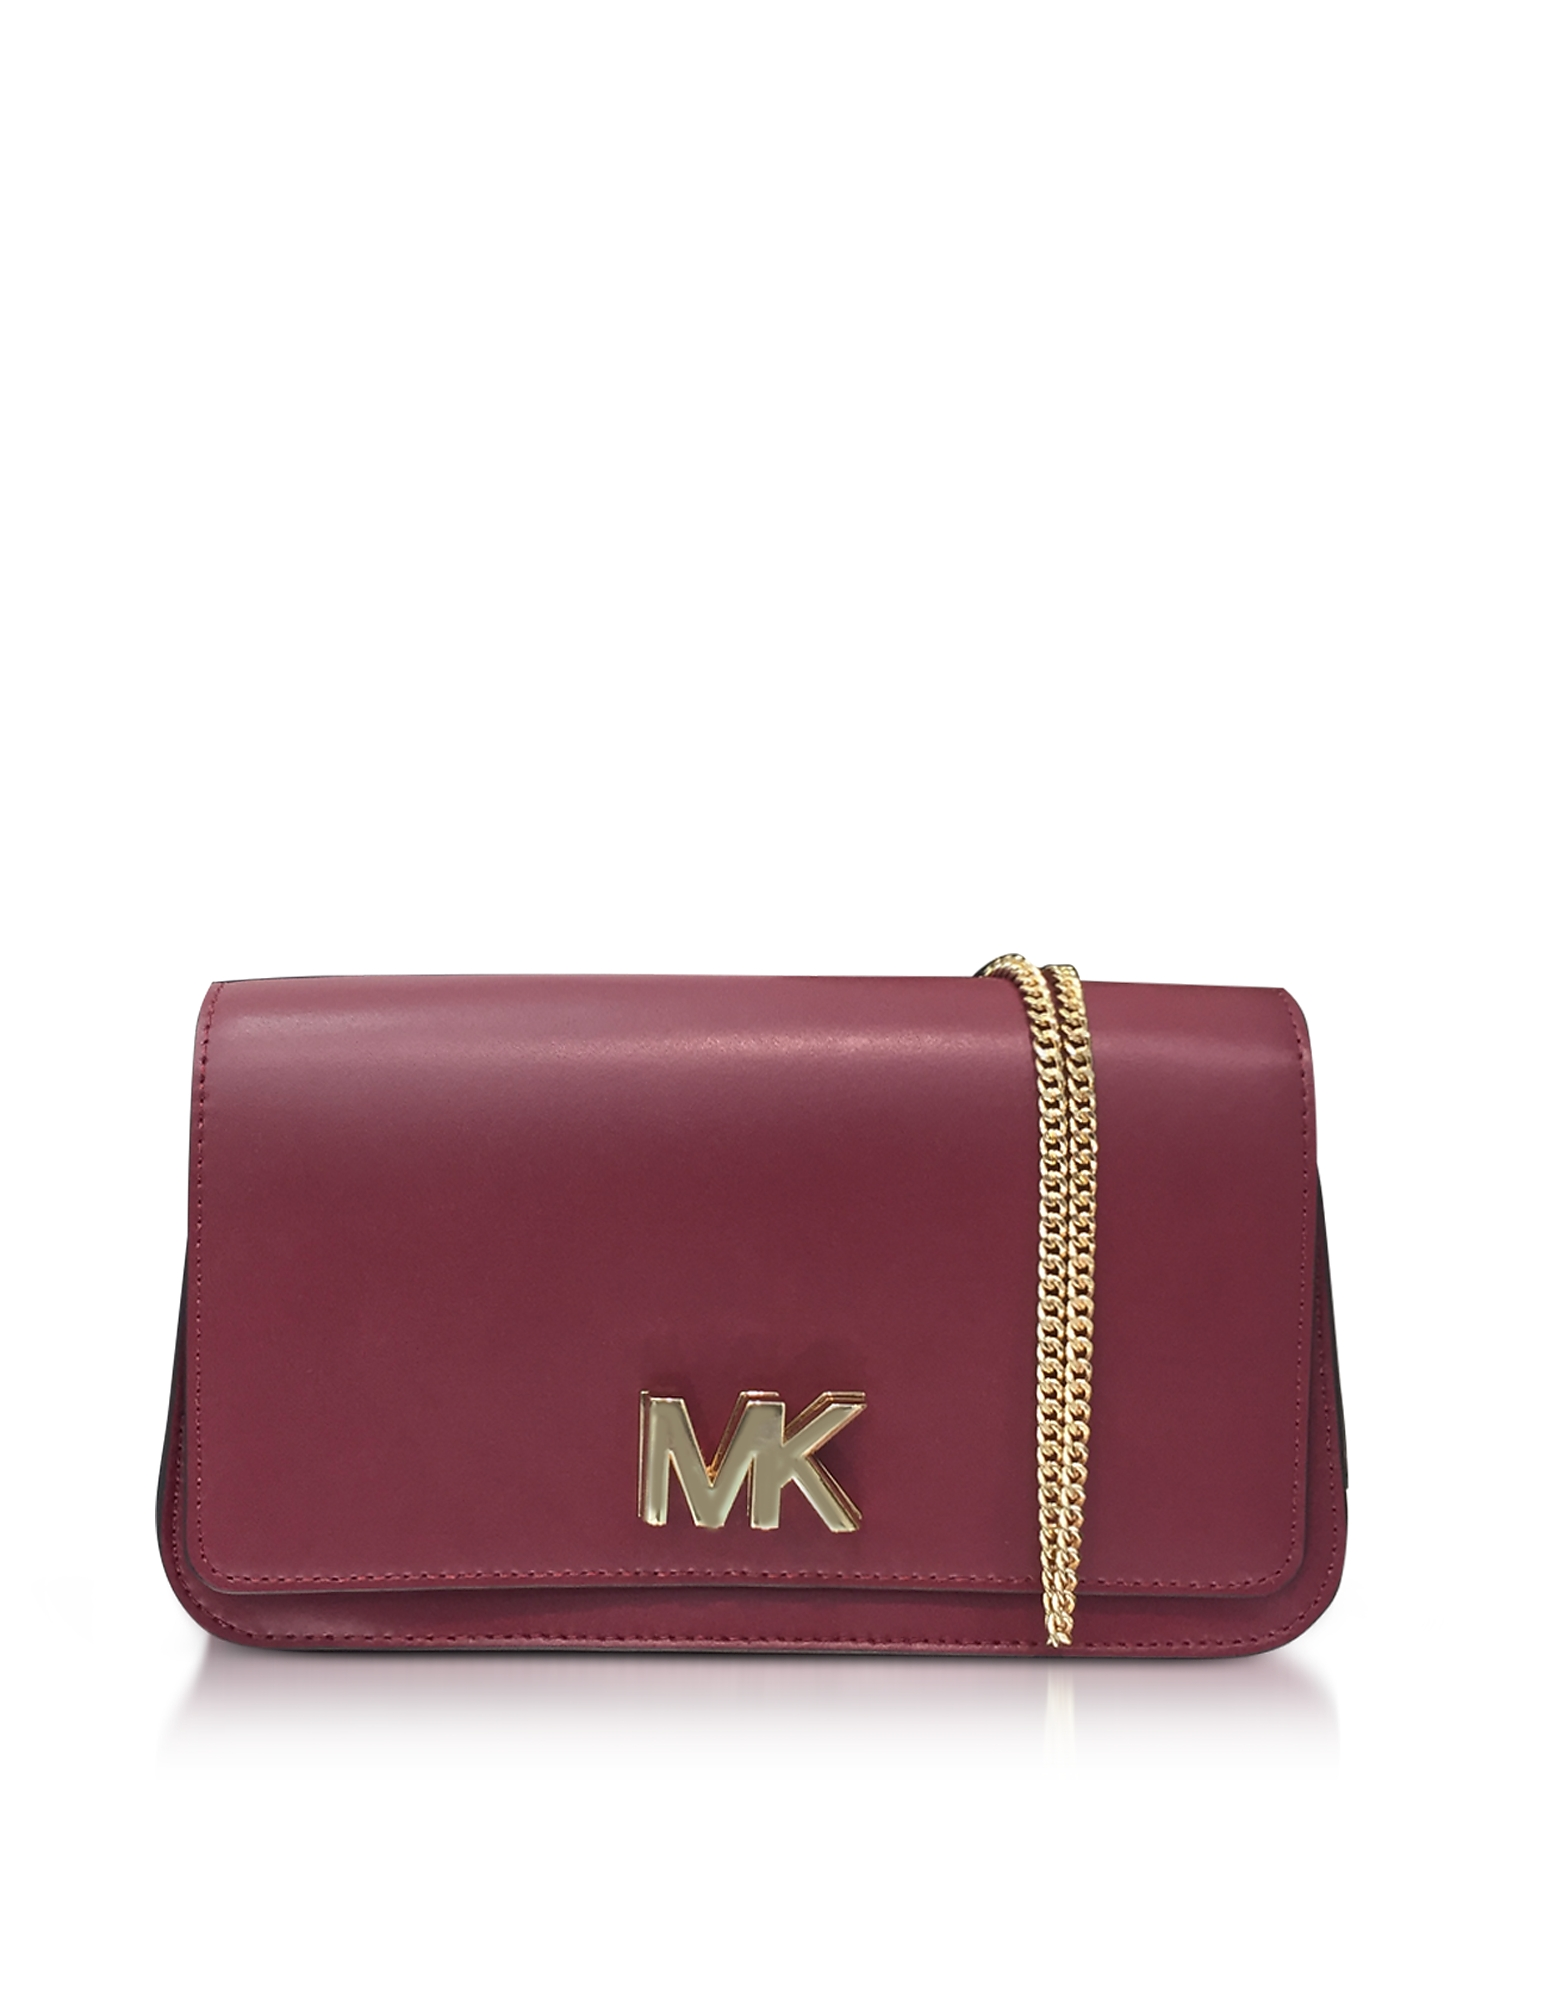 Michael Kors Handbags, Mott Large Mulberry Leather Clutch